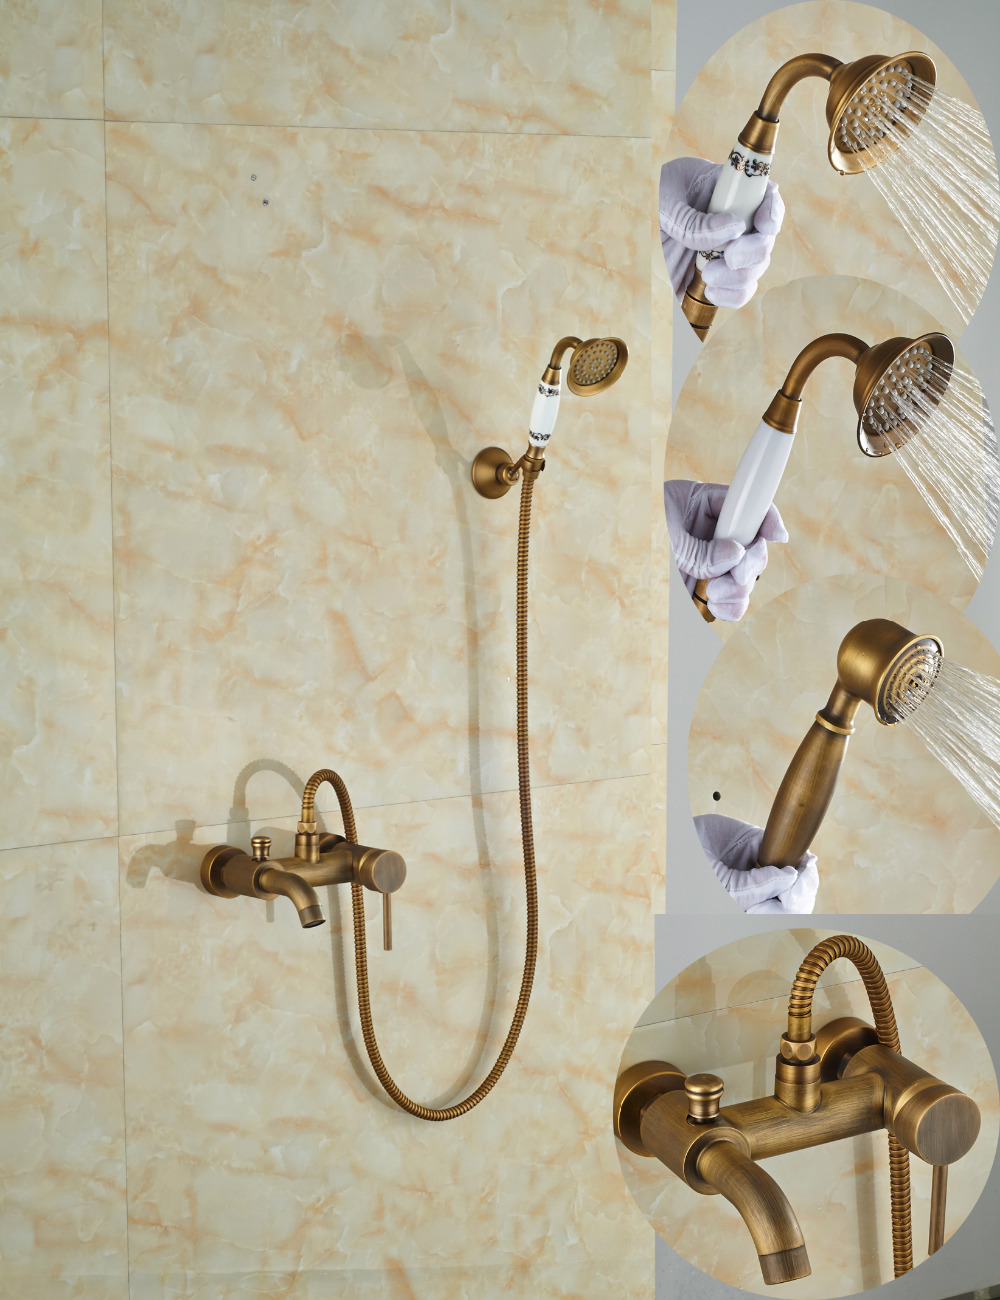 Wholesale And Retail Promotion Wall Mounted Bathroom Tub Faucet Spout W/ Hand Shower Sprayer Antique Brass Shower Mixer Tap чехлы для телефонов skinbox накладка skinbox slim silicone для zte blade v7 lite